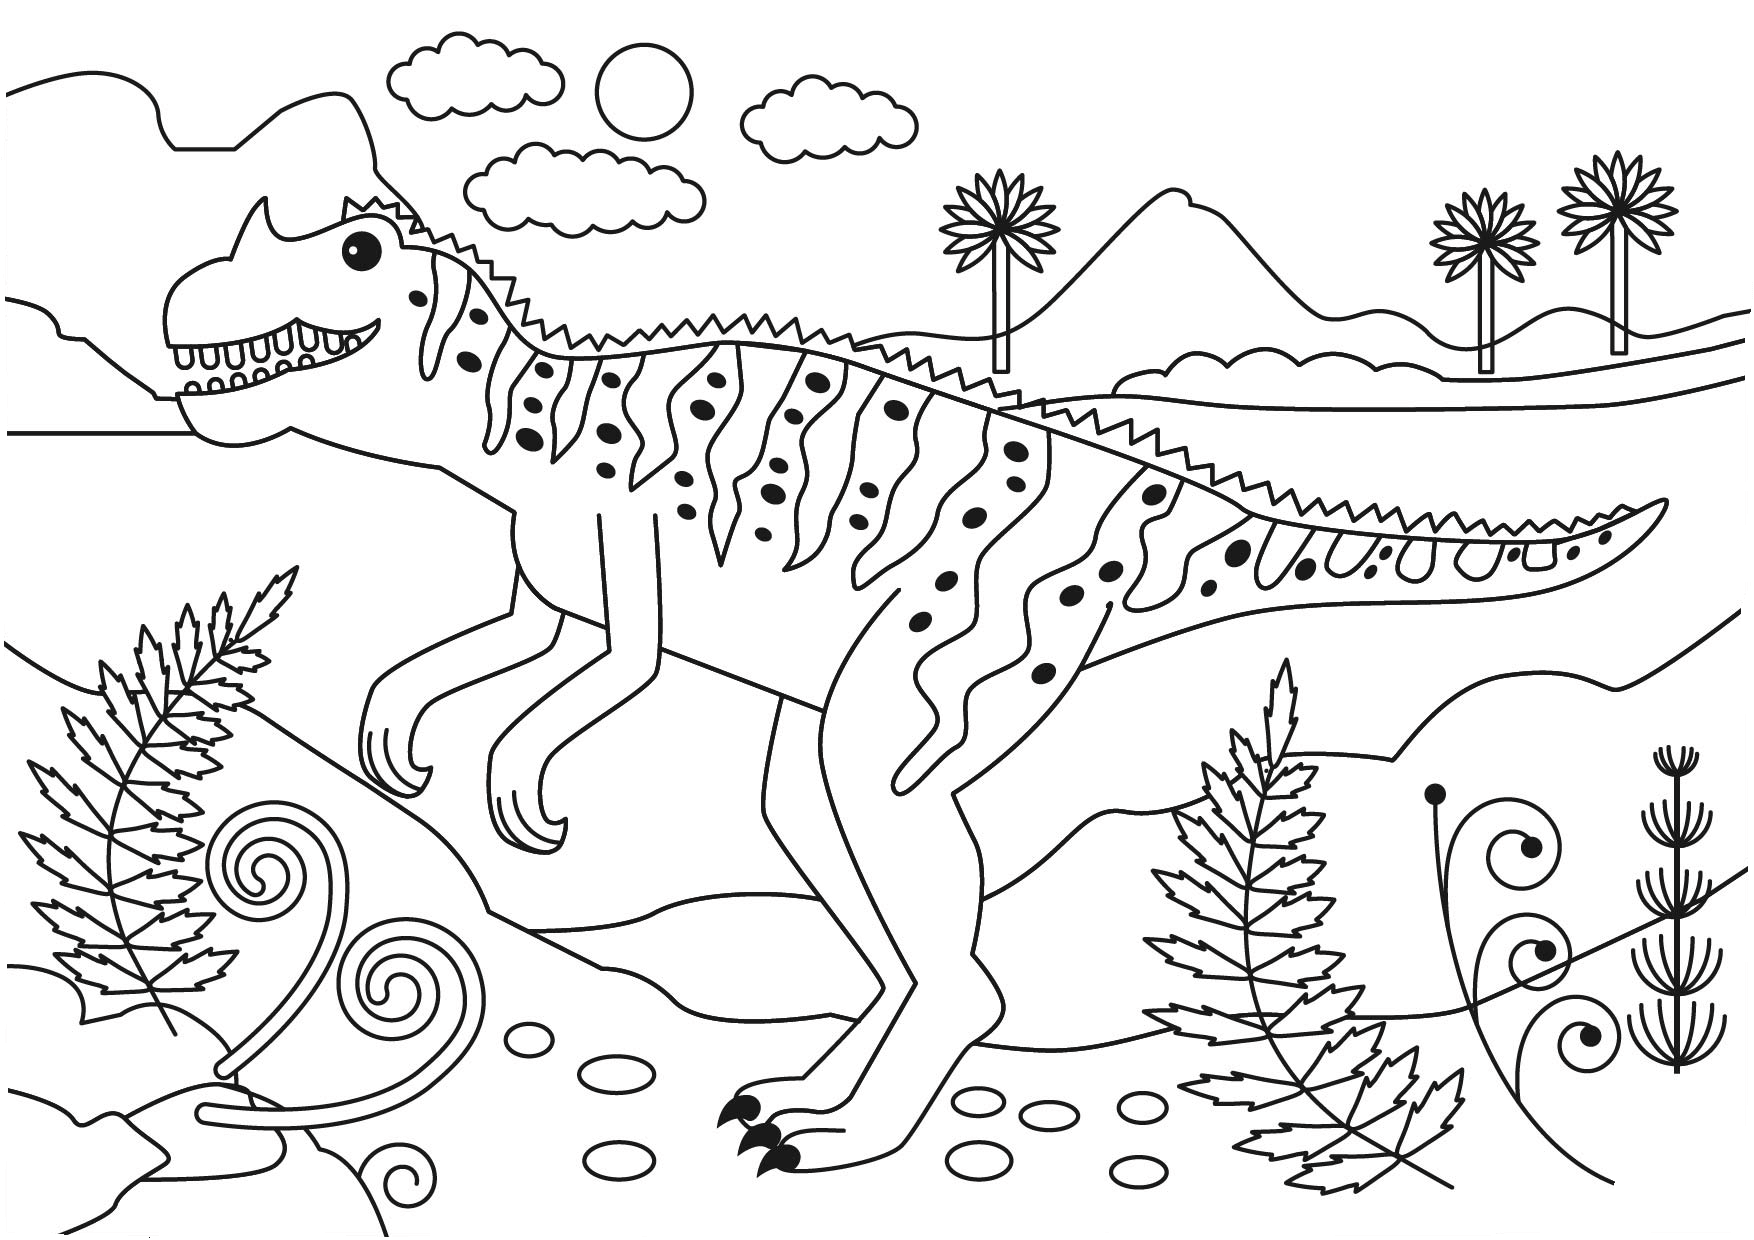 Coloring Page Free Printable Ceratosaurus Dinosaur Coloring Pages Dinosaur Coloring Coloring Books